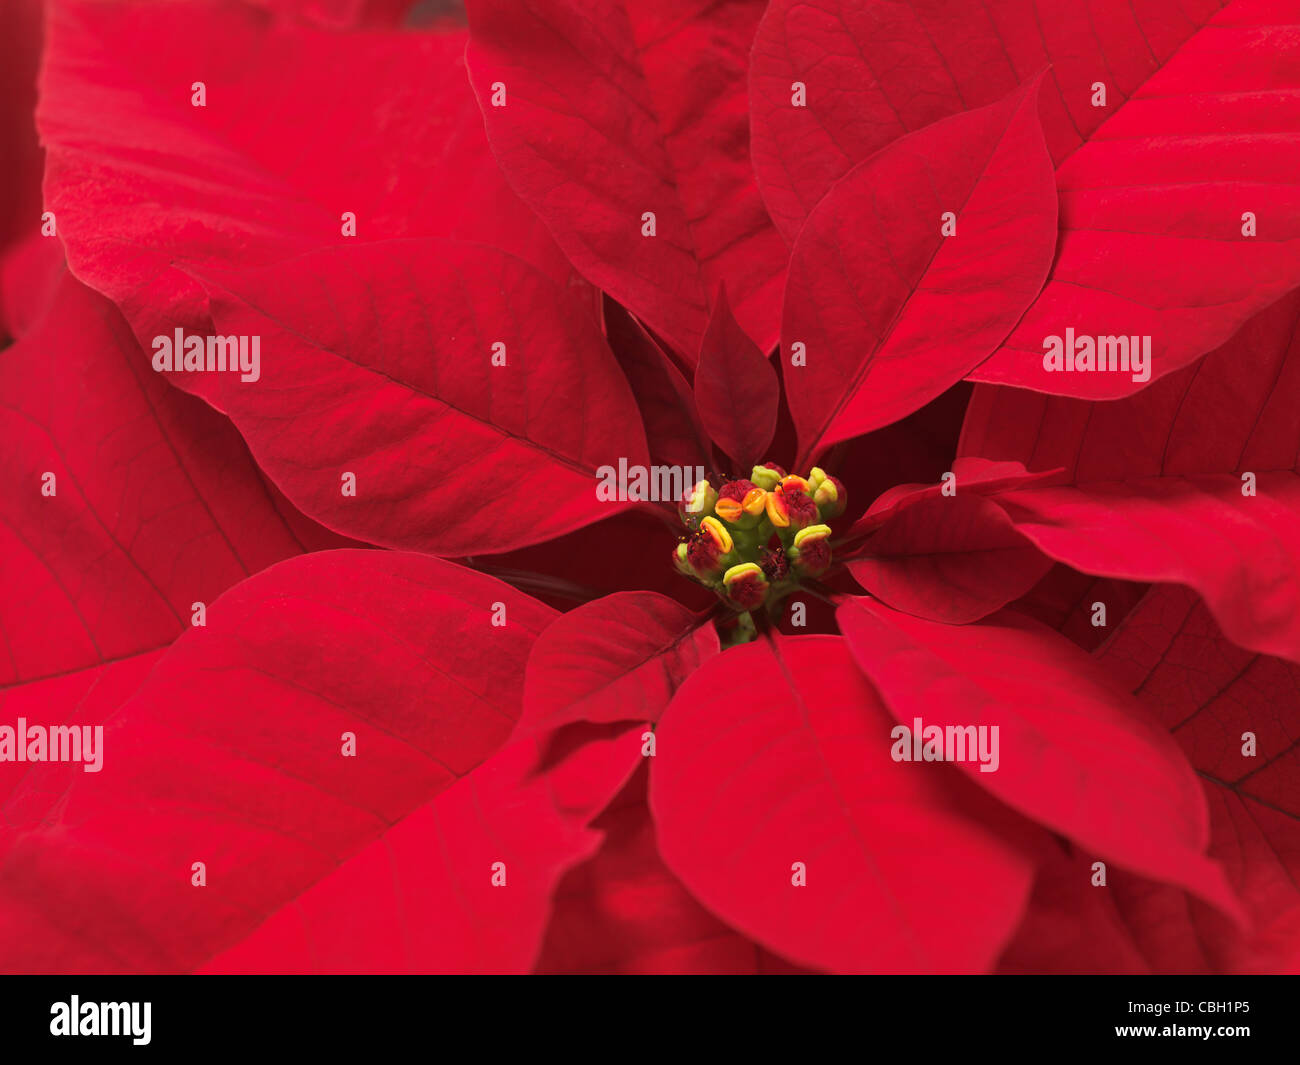 Closeup of Poinsettia - red Christmas flower leaves abstract background - Stock Image